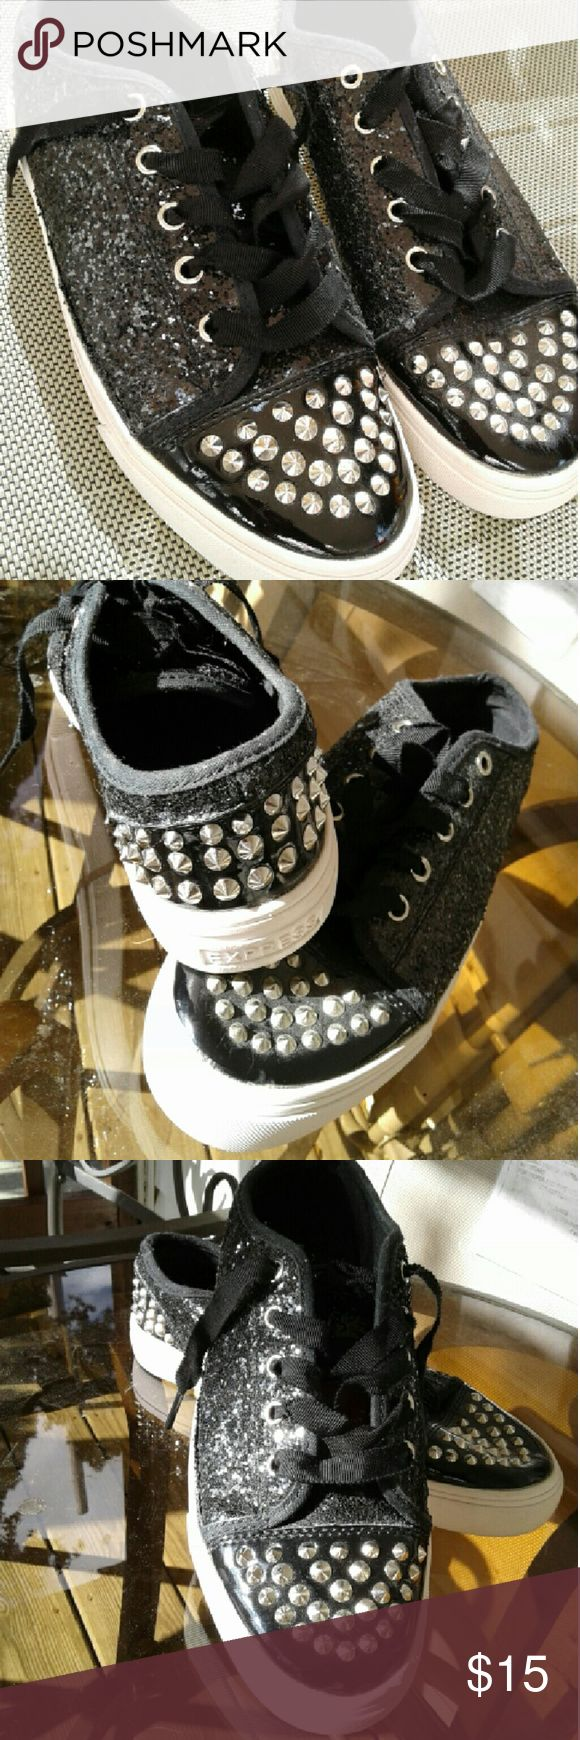 Rhinestone and Glitter Express Shoes Extremely cute sneakers . These are very decorative with stones and glitter. express written on back of soles. Very Gently used shoe. Express Shoes Sneakers